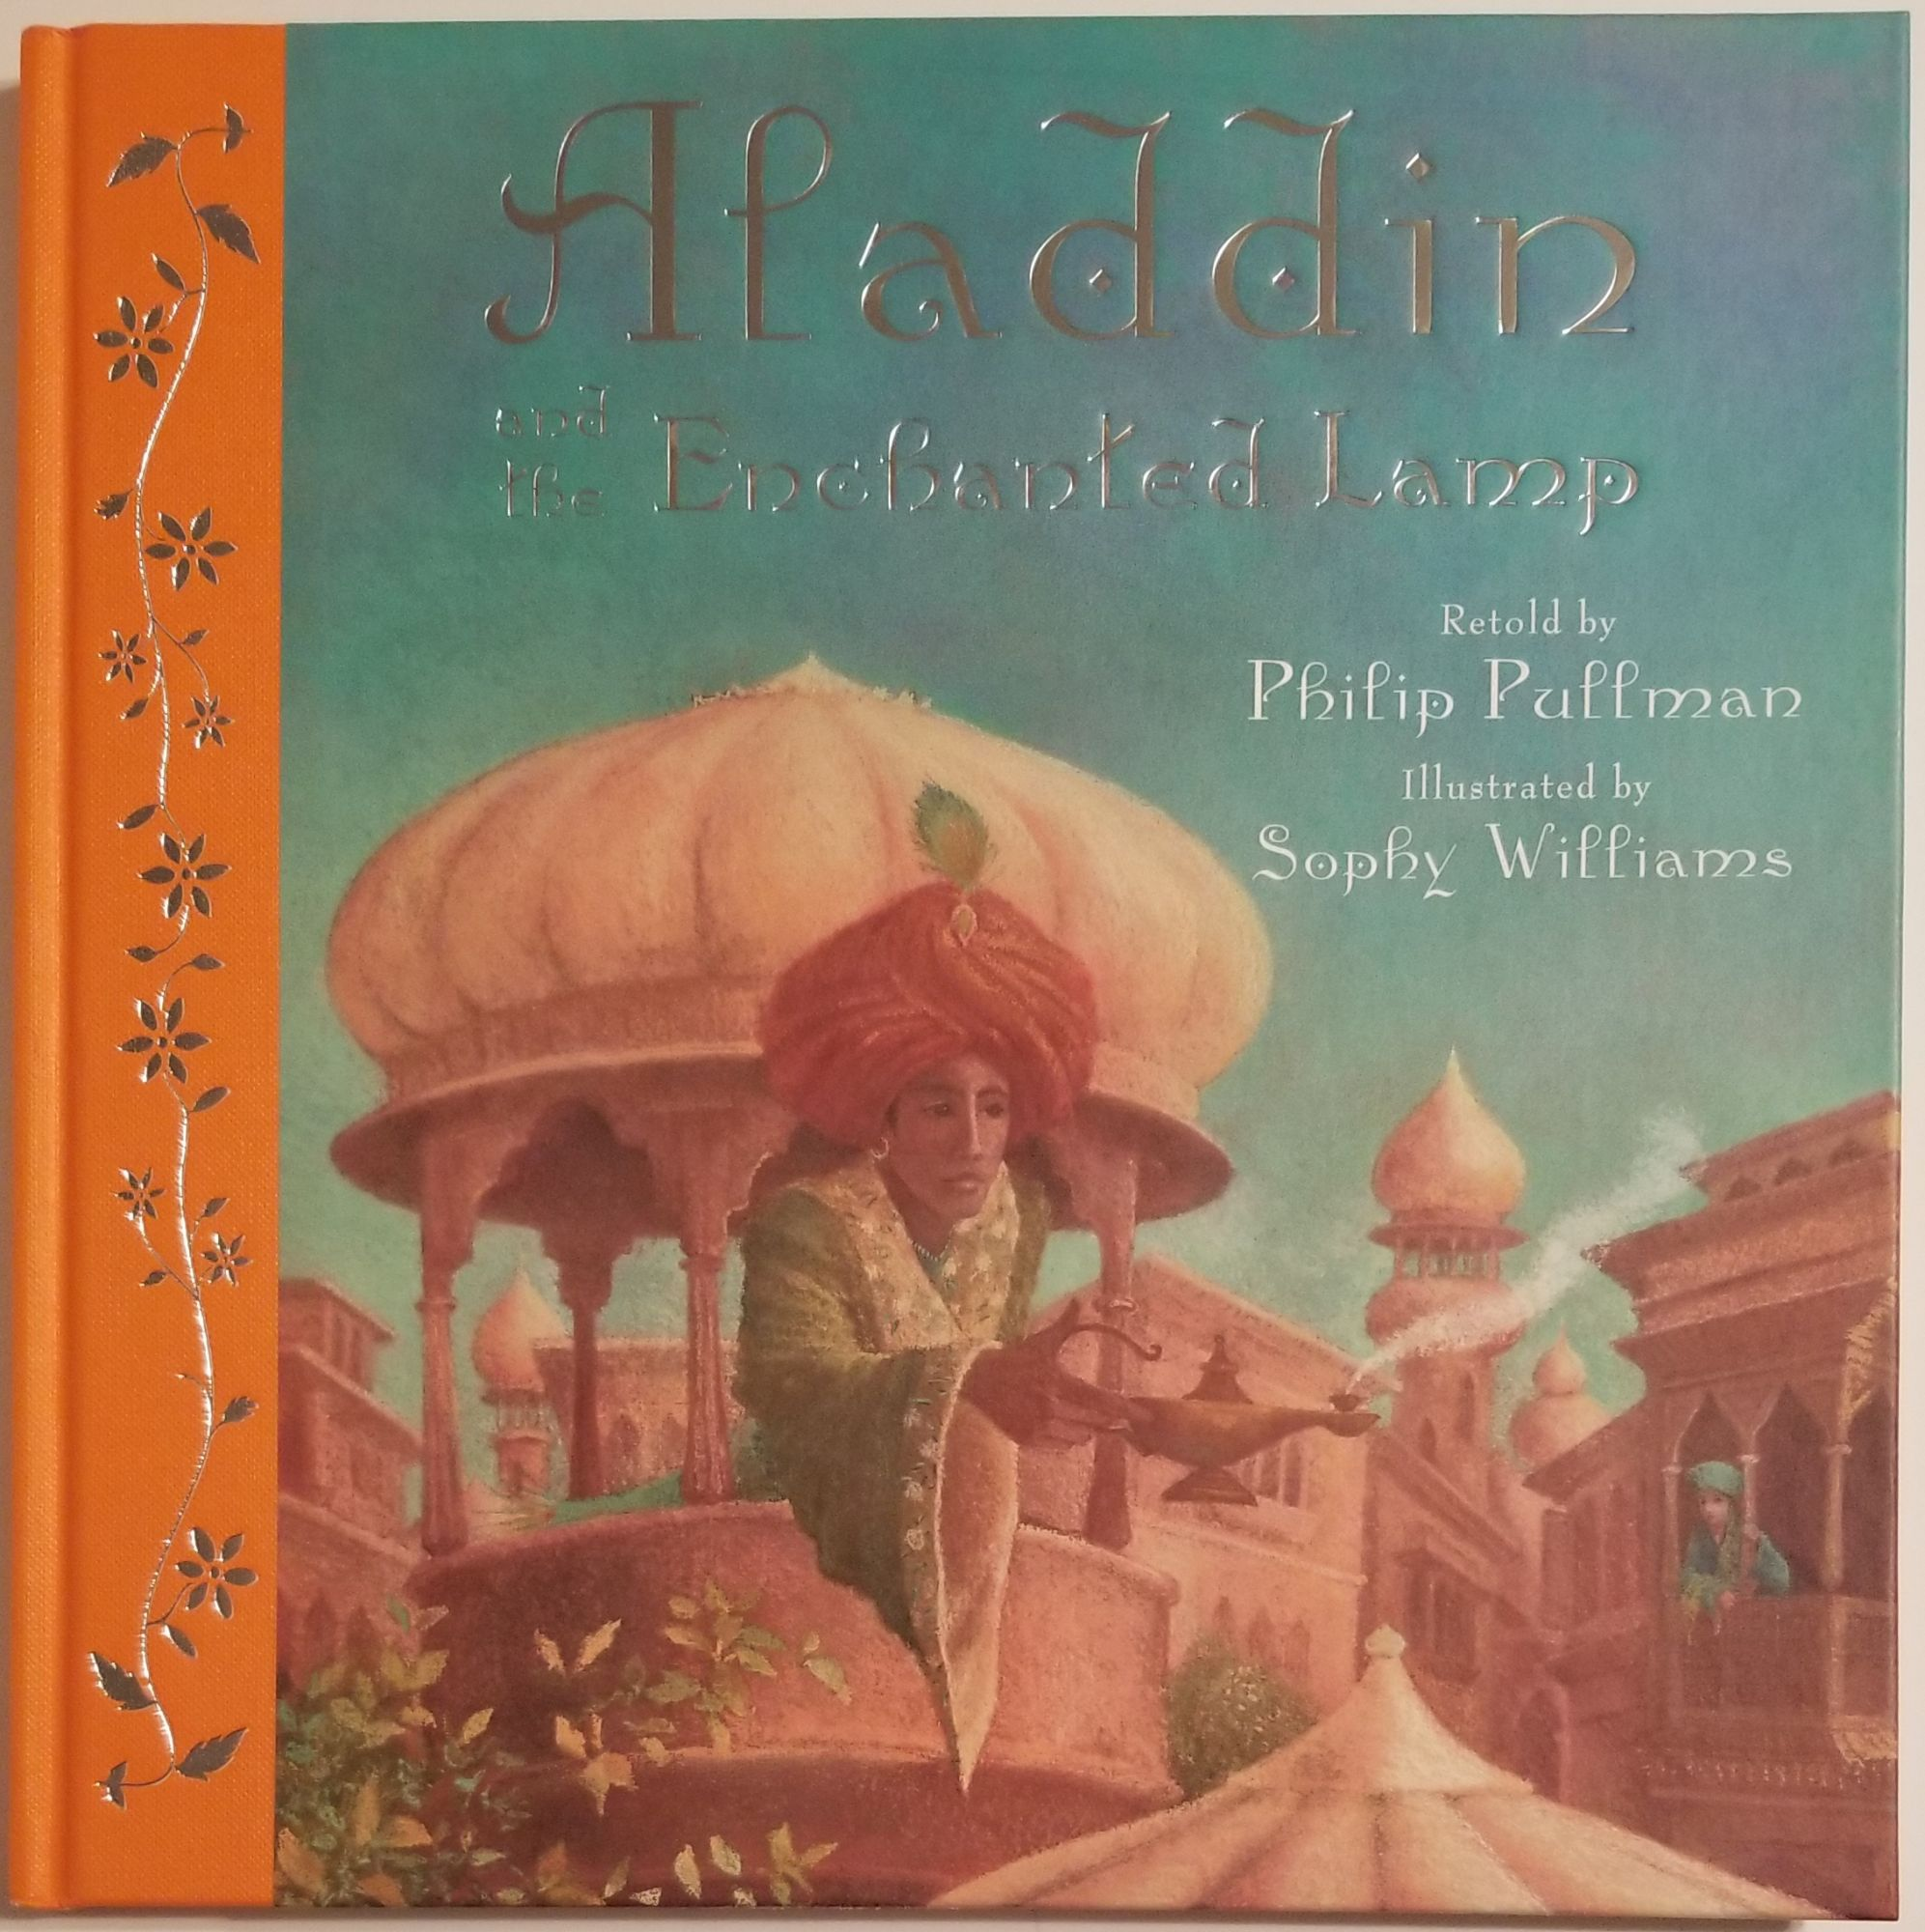 ALADDIN AND THE ENCHANTED LAMP. Retold by Philip Pullman and Illustrated by Sophy Williams. Philip Pullman.